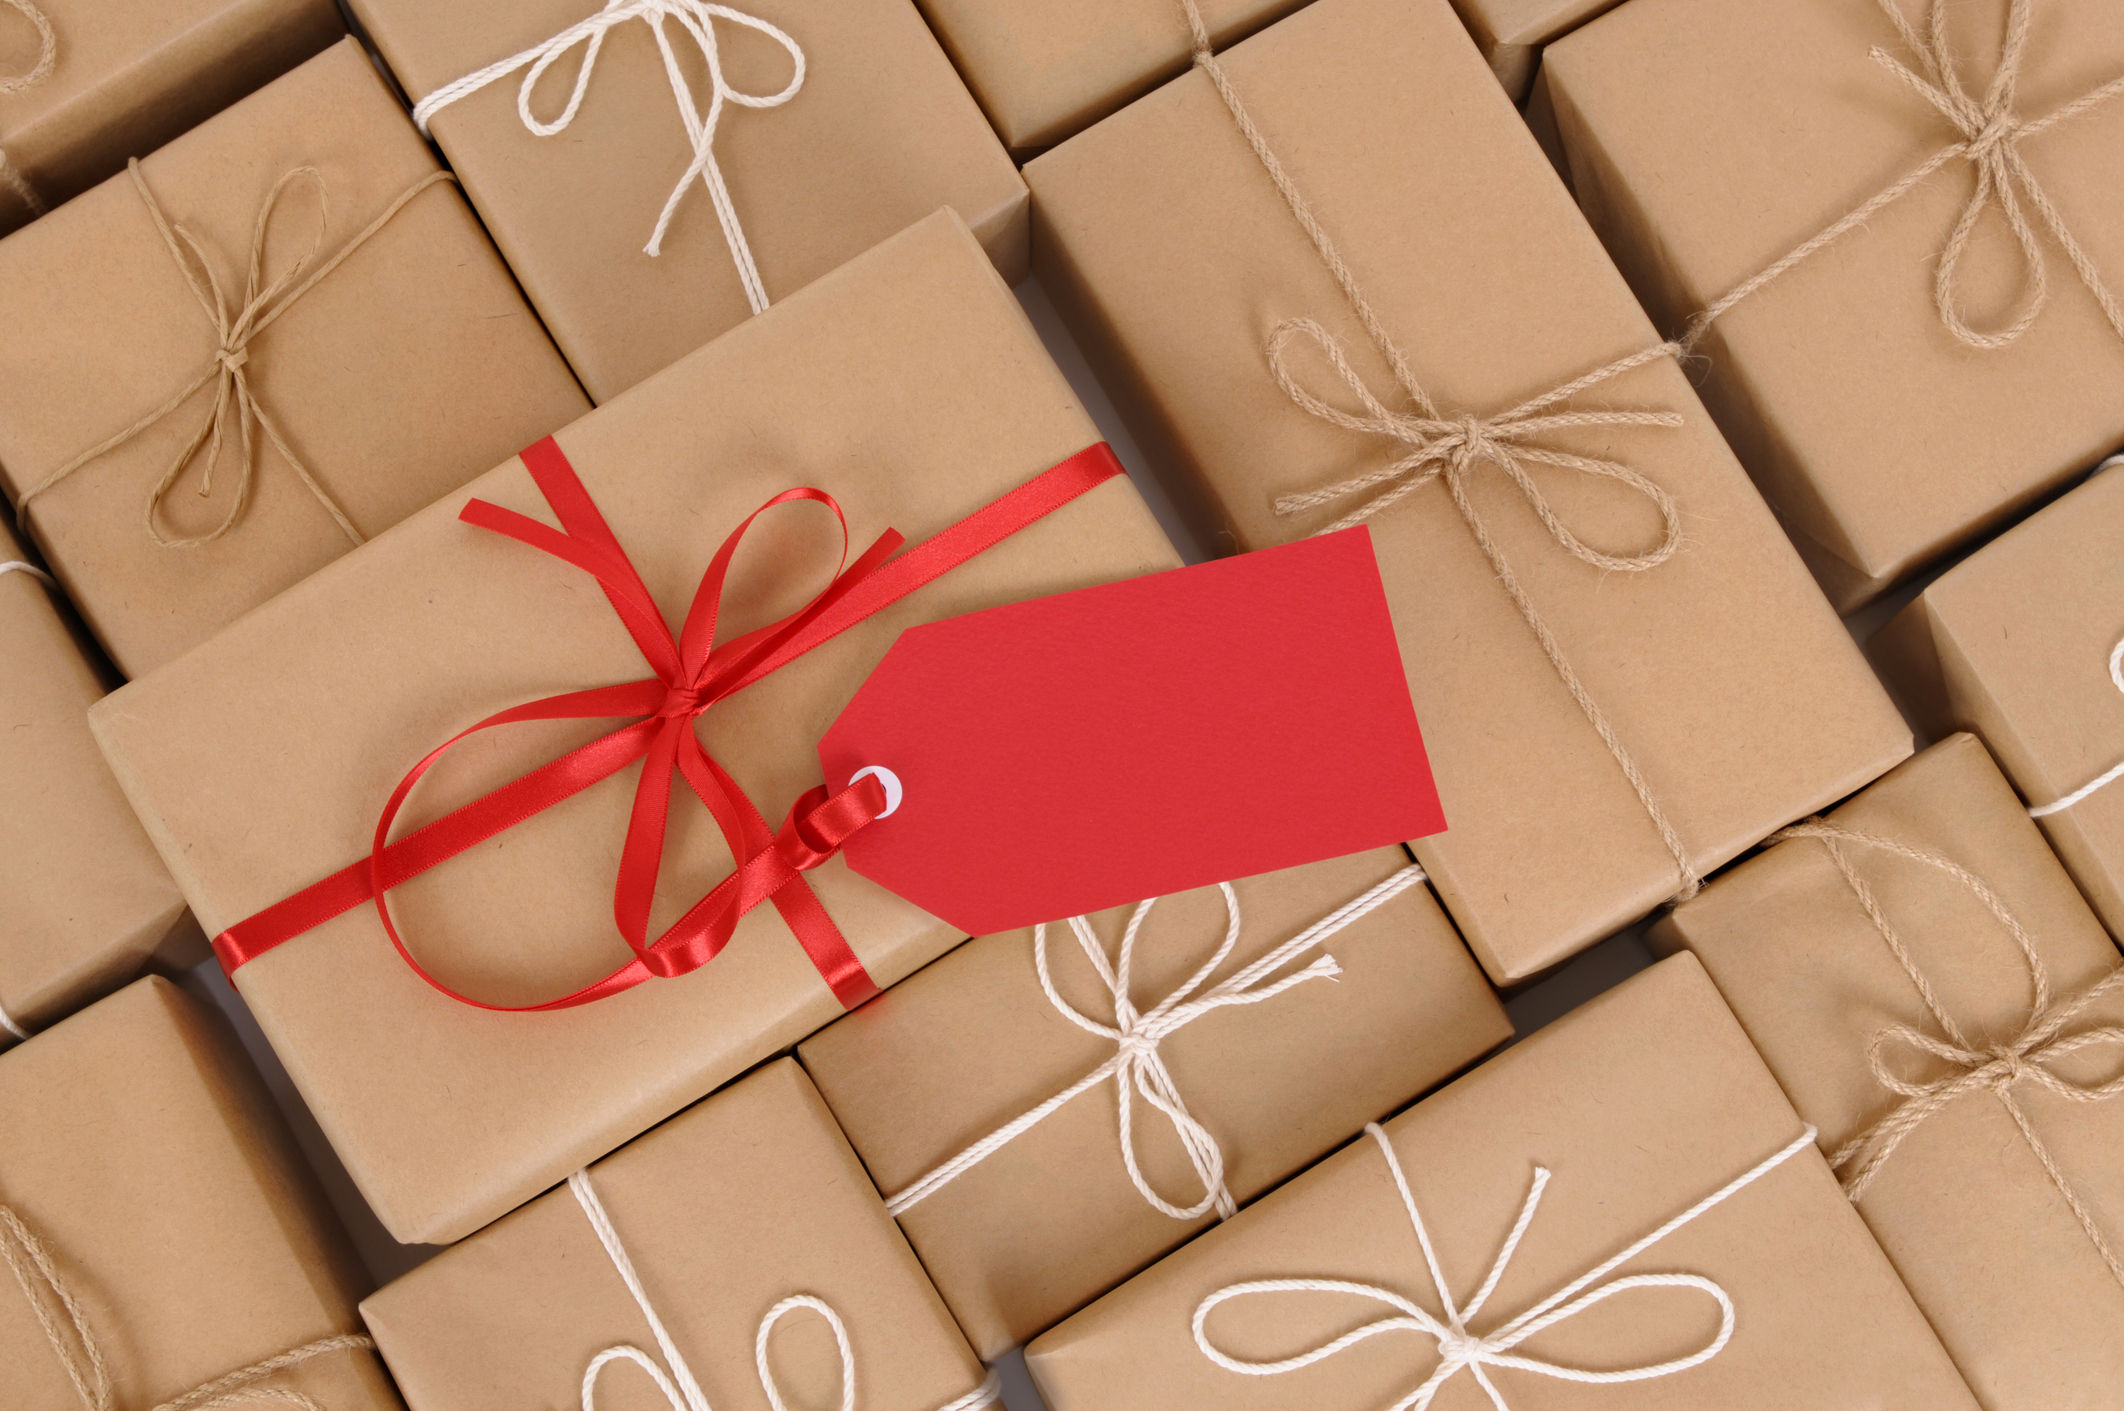 Several brown paper packages, one with red ribbon and gift tag. To see my complete collection of packages and boxes please CLICK HERE. Alternative version of this file shown below: